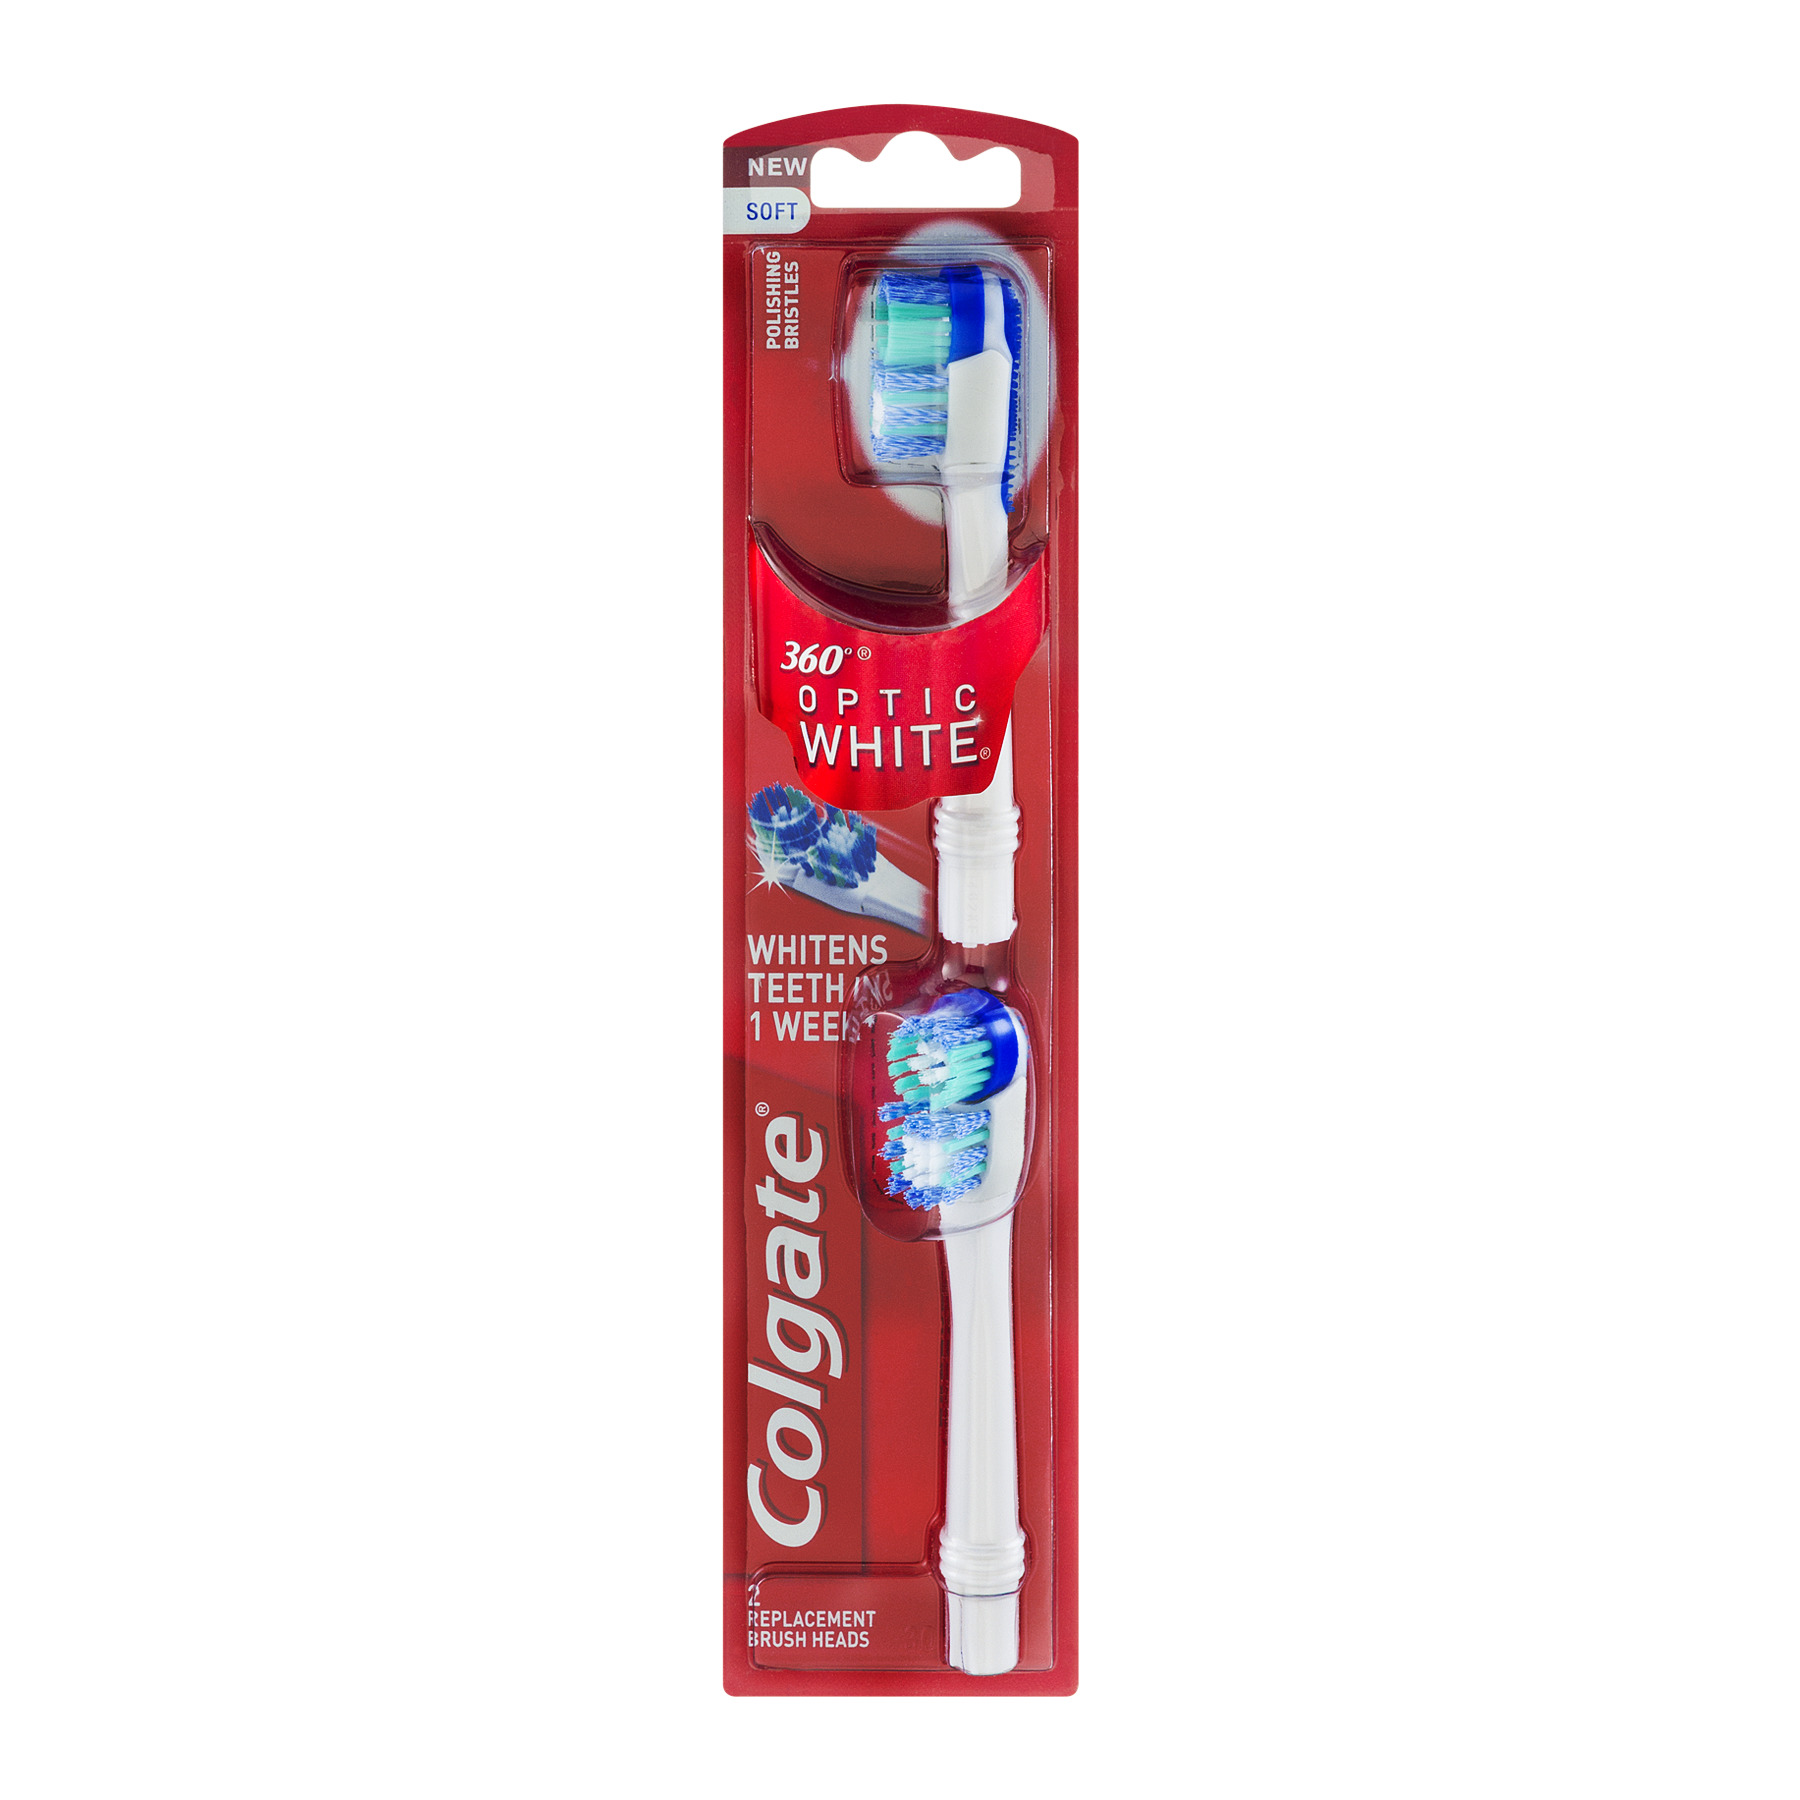 Colgate 360 Optic White Battery Toothbrush Replacement Head - 2 Count